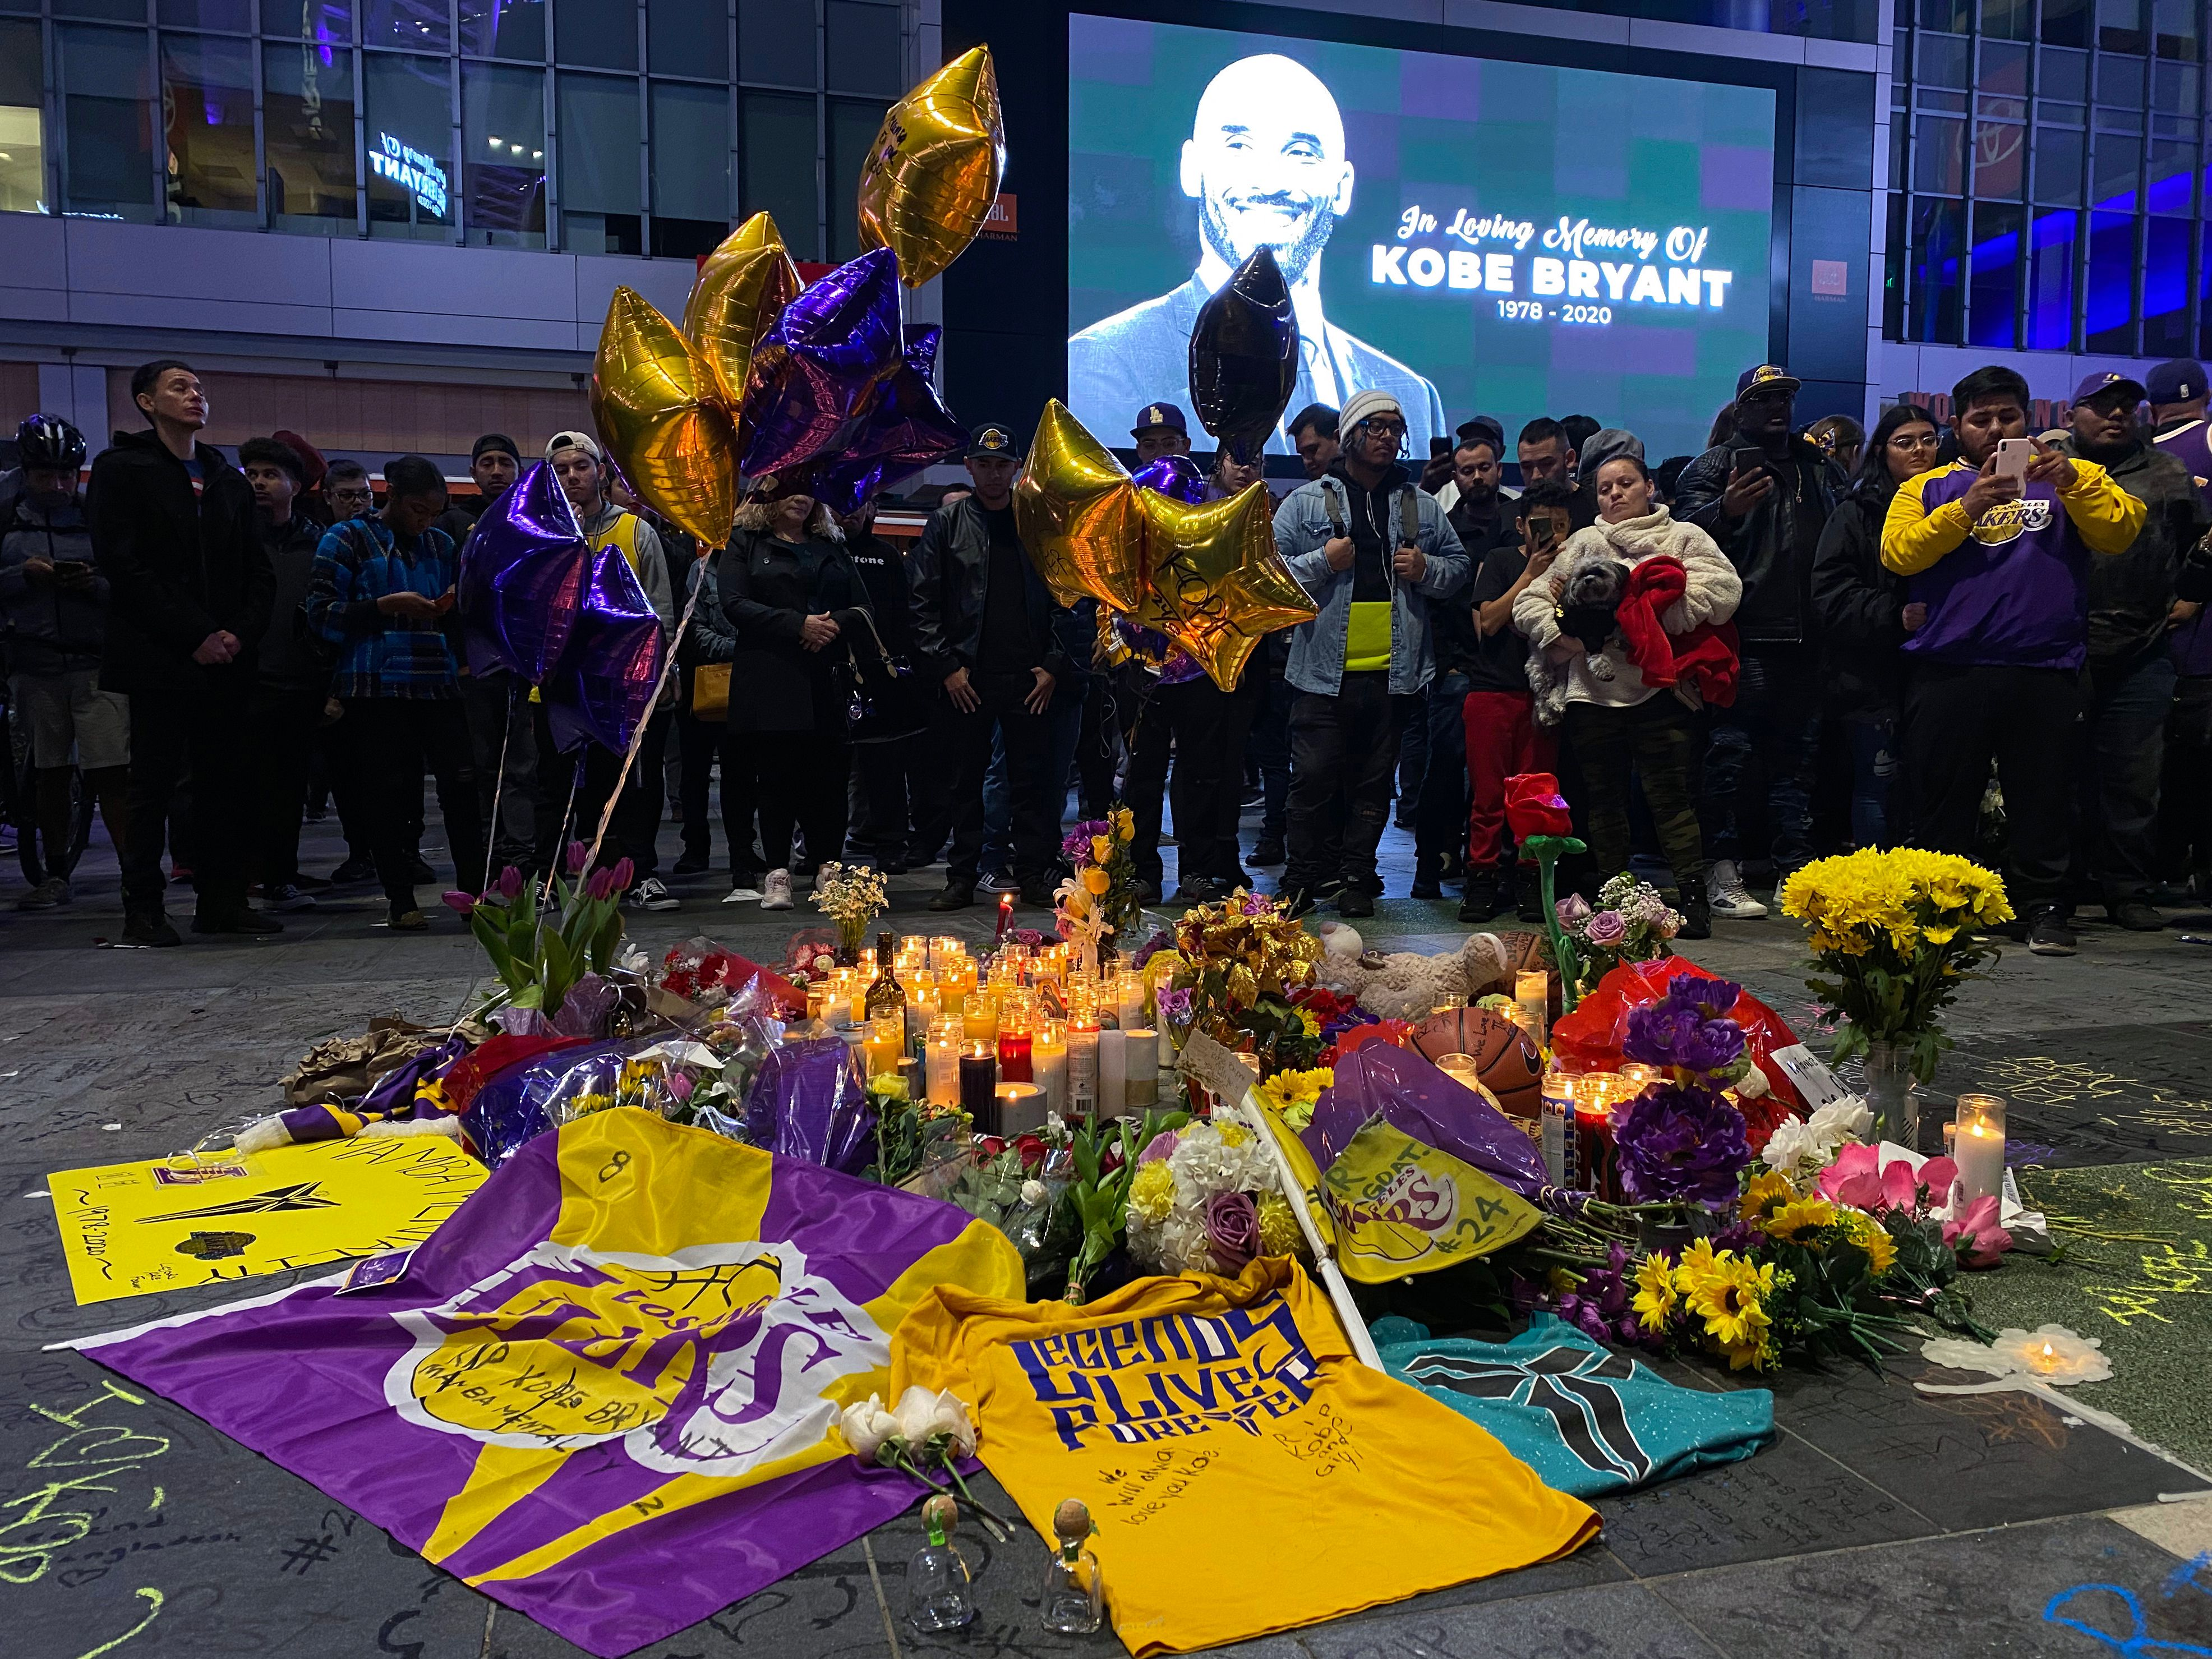 As Los Angeles mourns Kobe Bryant, the Lakers and Clippers will postpone their Tuesday game. (Photo by Chris Delmas /AFP)